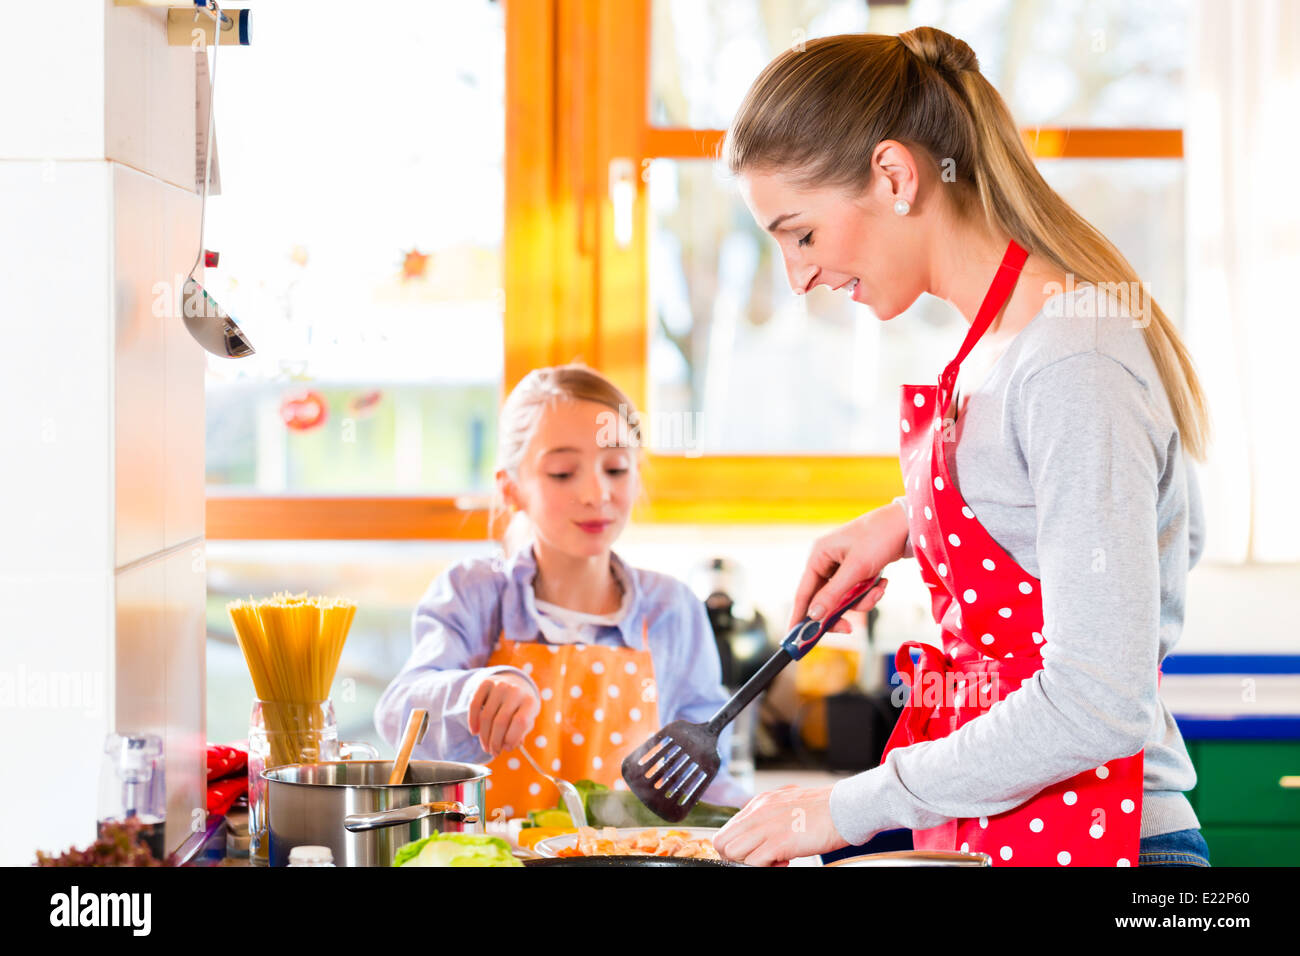 Mother showing daughter how to cook in domestic kitchen - Stock Image